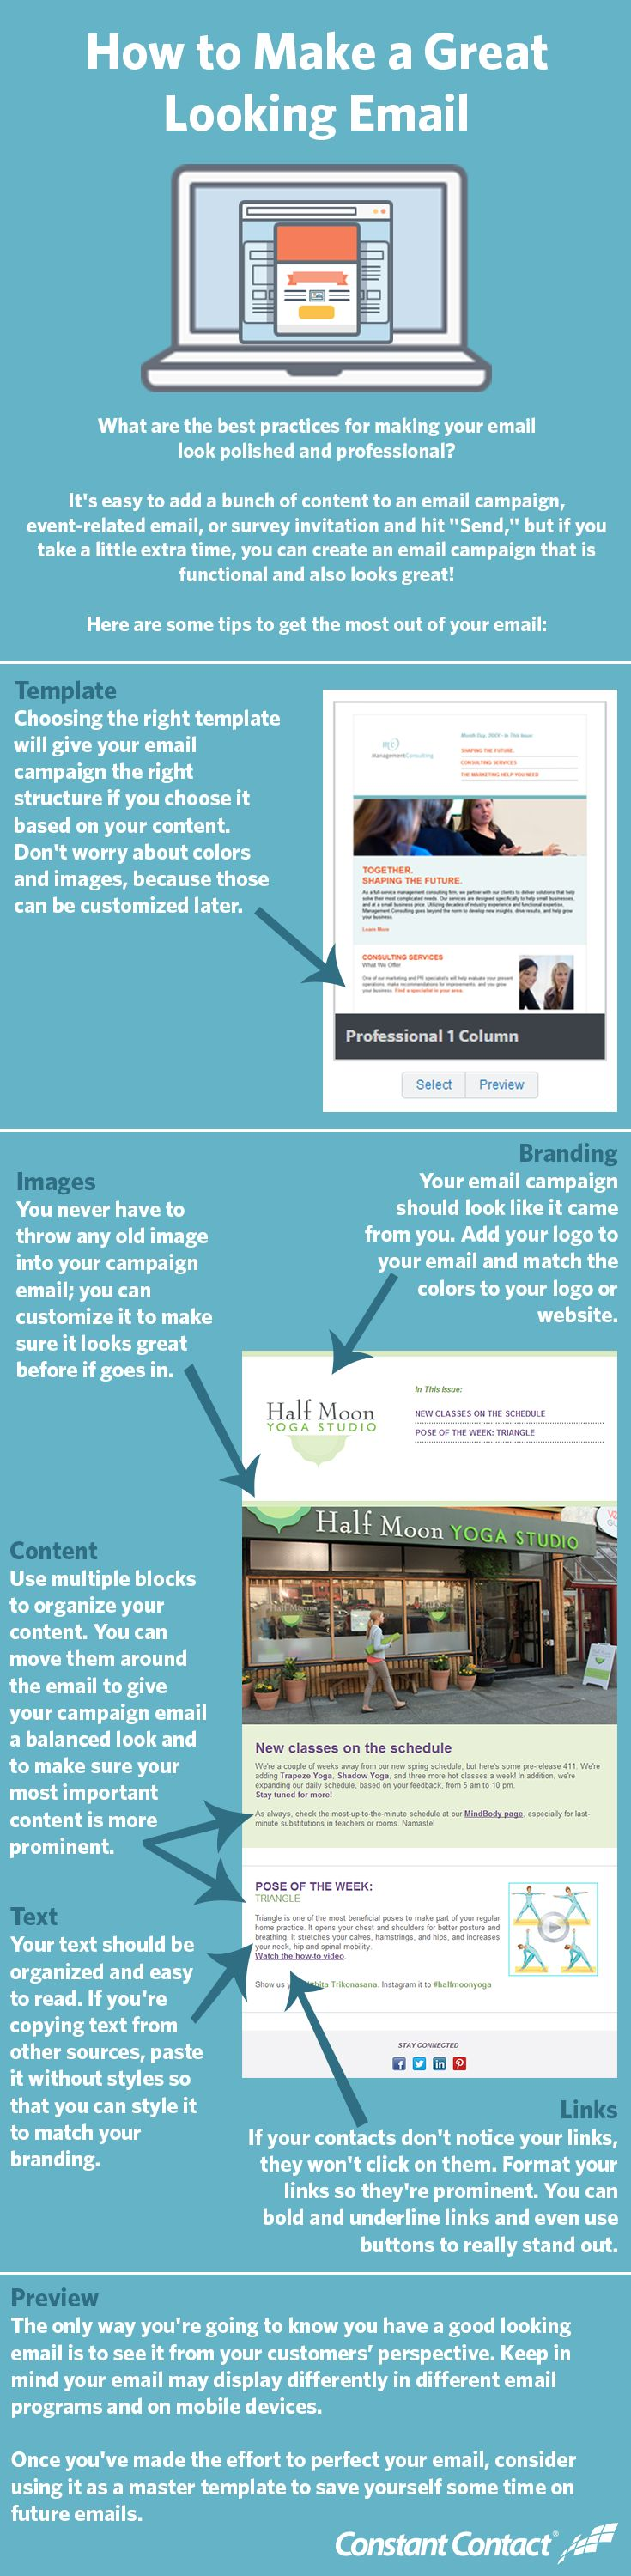 How to Make a Great Looking Email Infographic